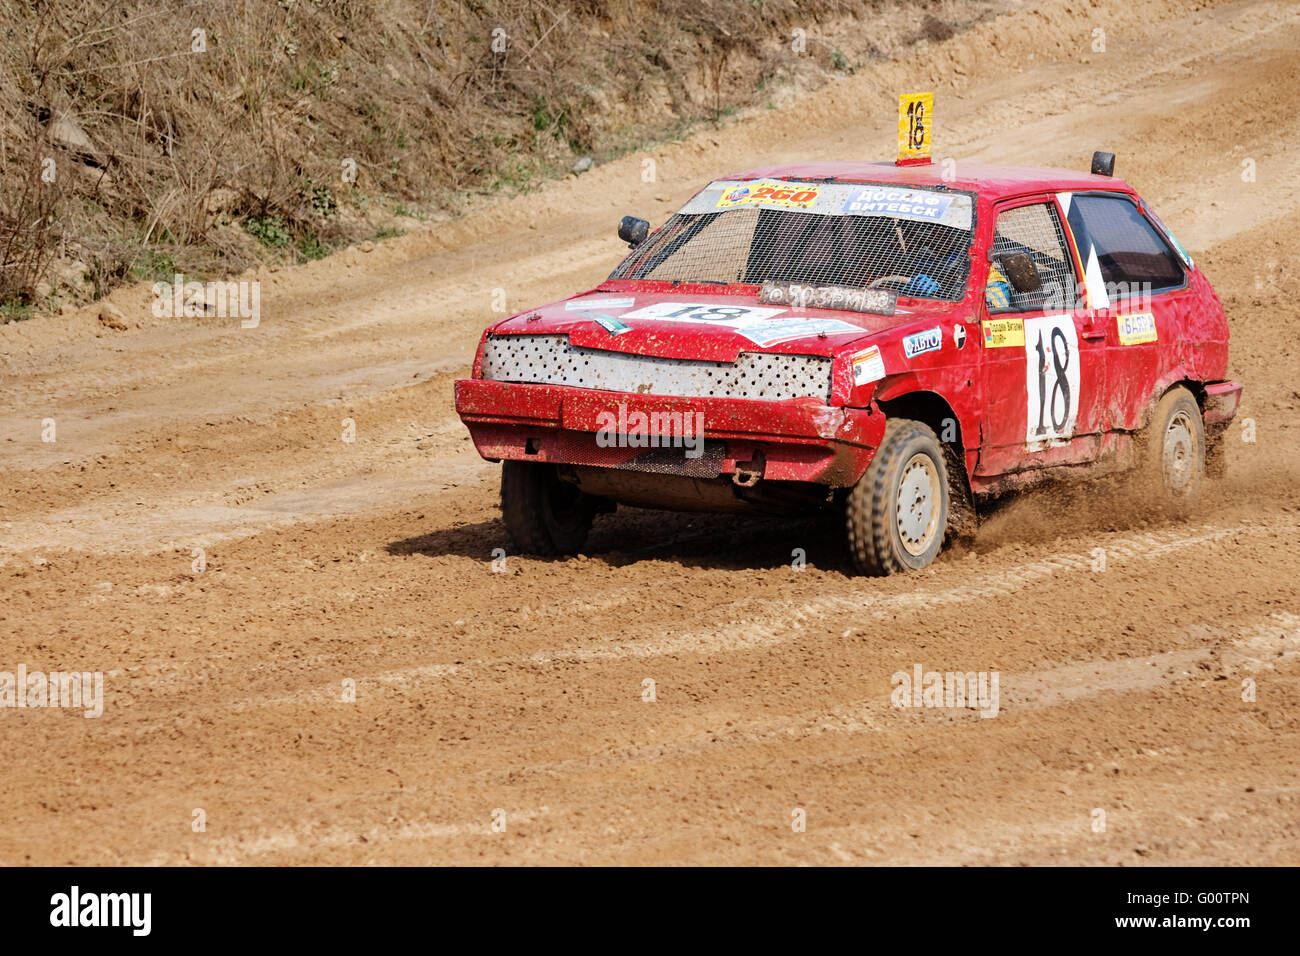 Dirty races. - Stock Image